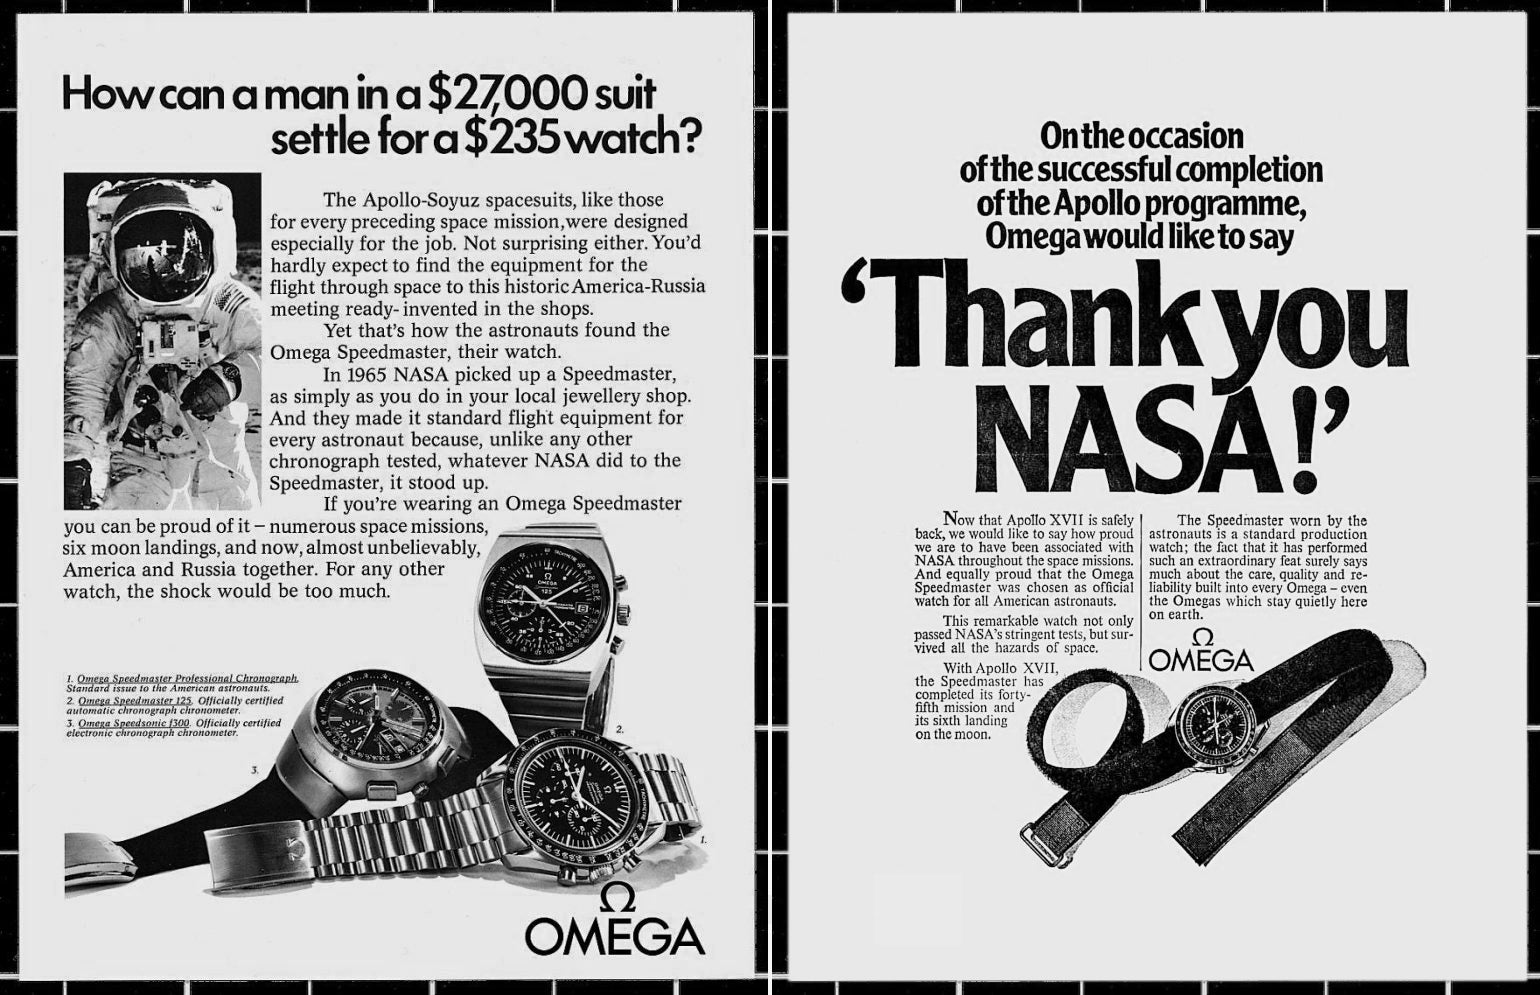 vintage advertisements of Omega Moon watch